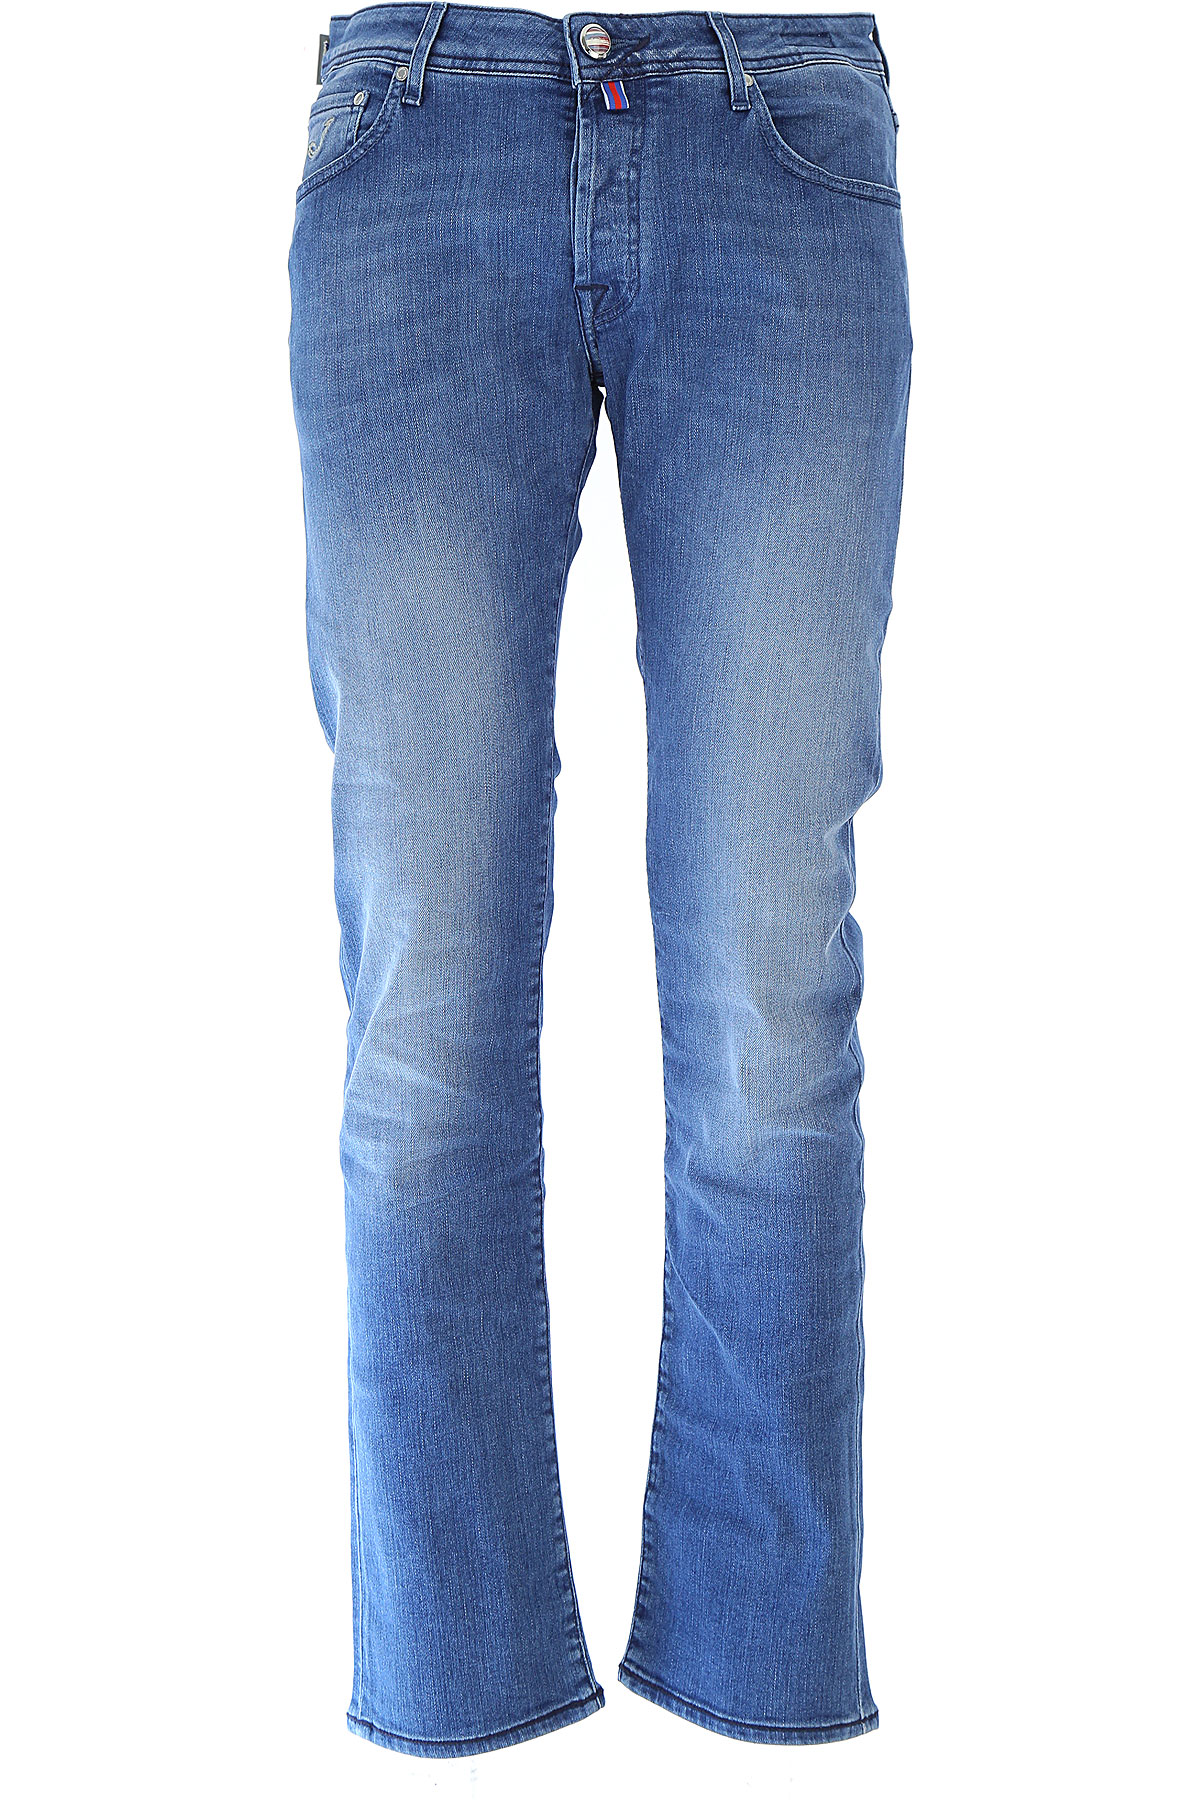 Jacob Cohen Jeans, Denim, Cotton, 2017, 31 32 33 34 36